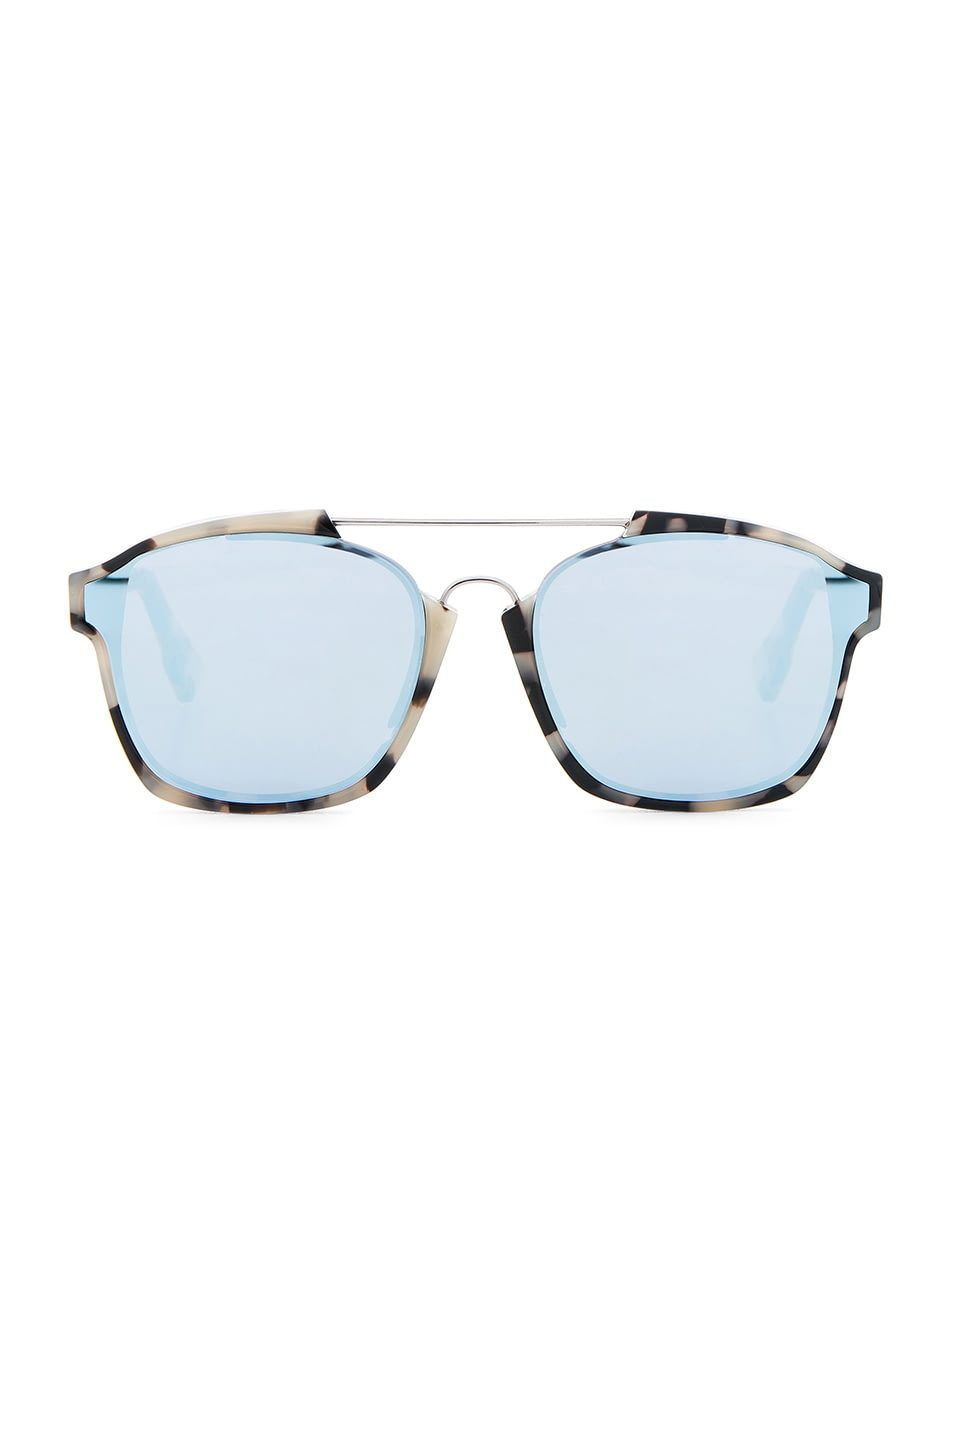 66228a5daba0 Buy Original Dior Abstract Sunglasses at Indonesia